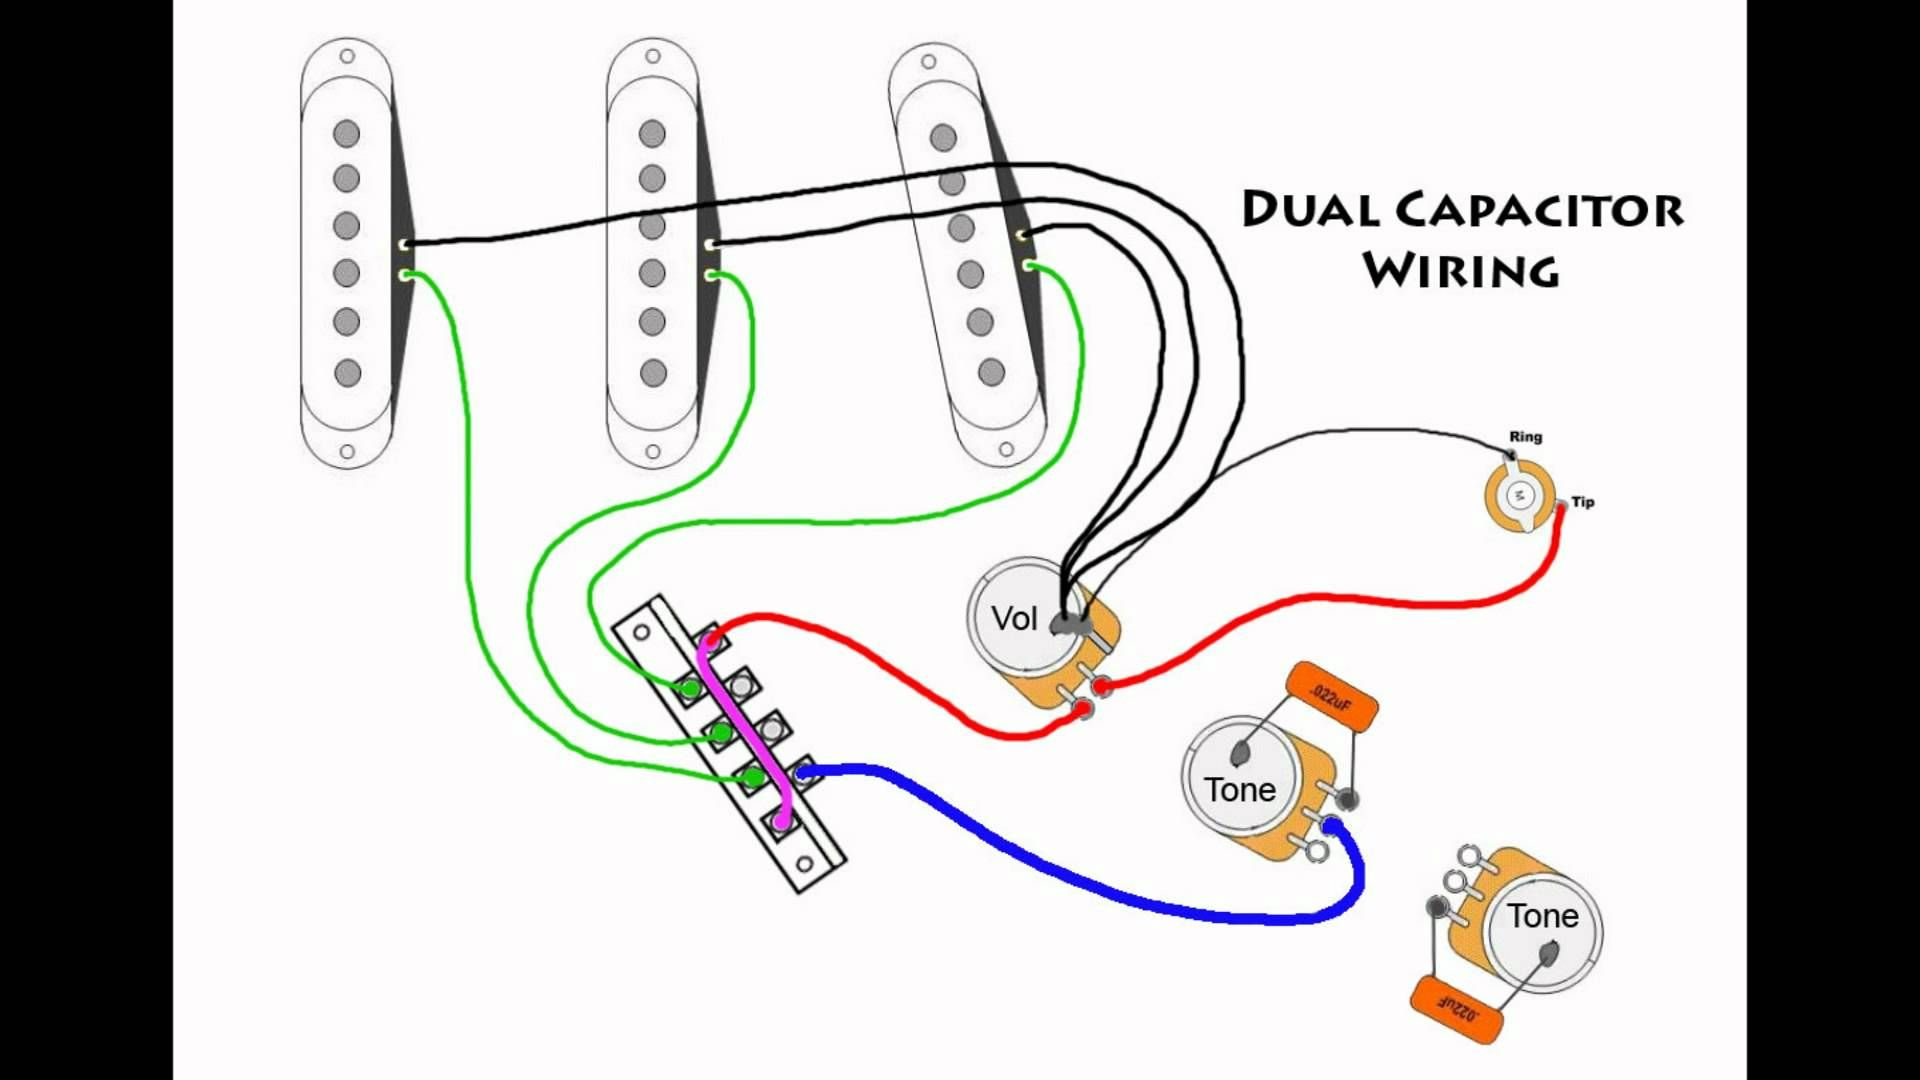 Guitar Wiring Diagrams Free Online Image Schematic Wiring Diagram